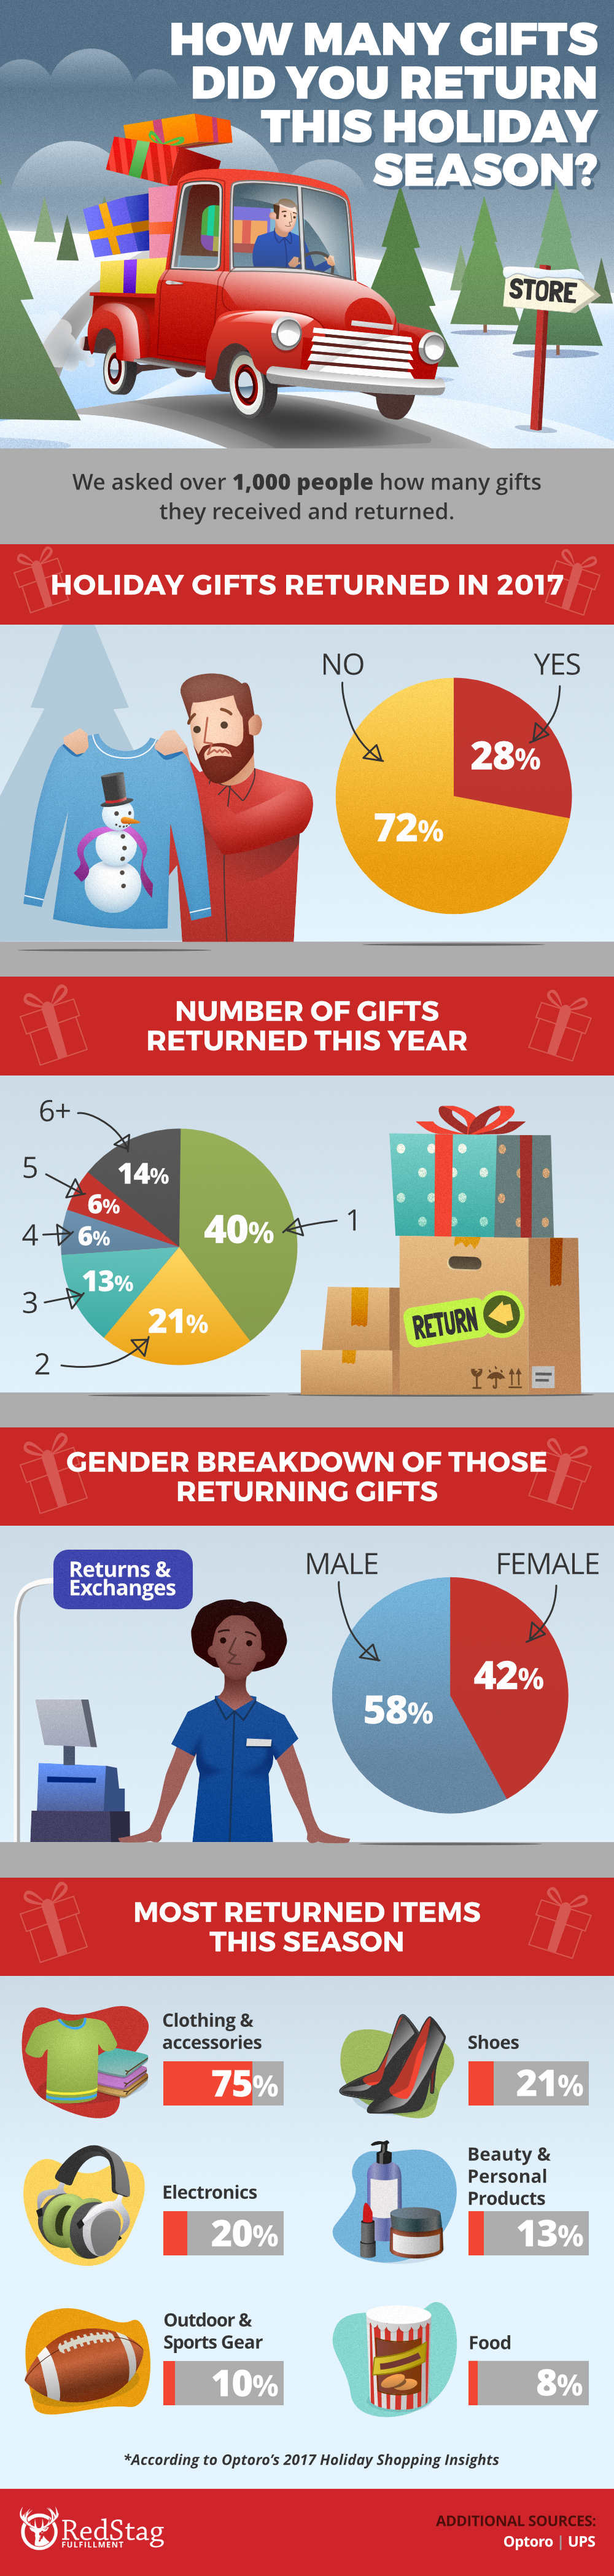 2017 Holiday Returns Statistics: Holiday Returns by Customers are at 28%, Survey Says